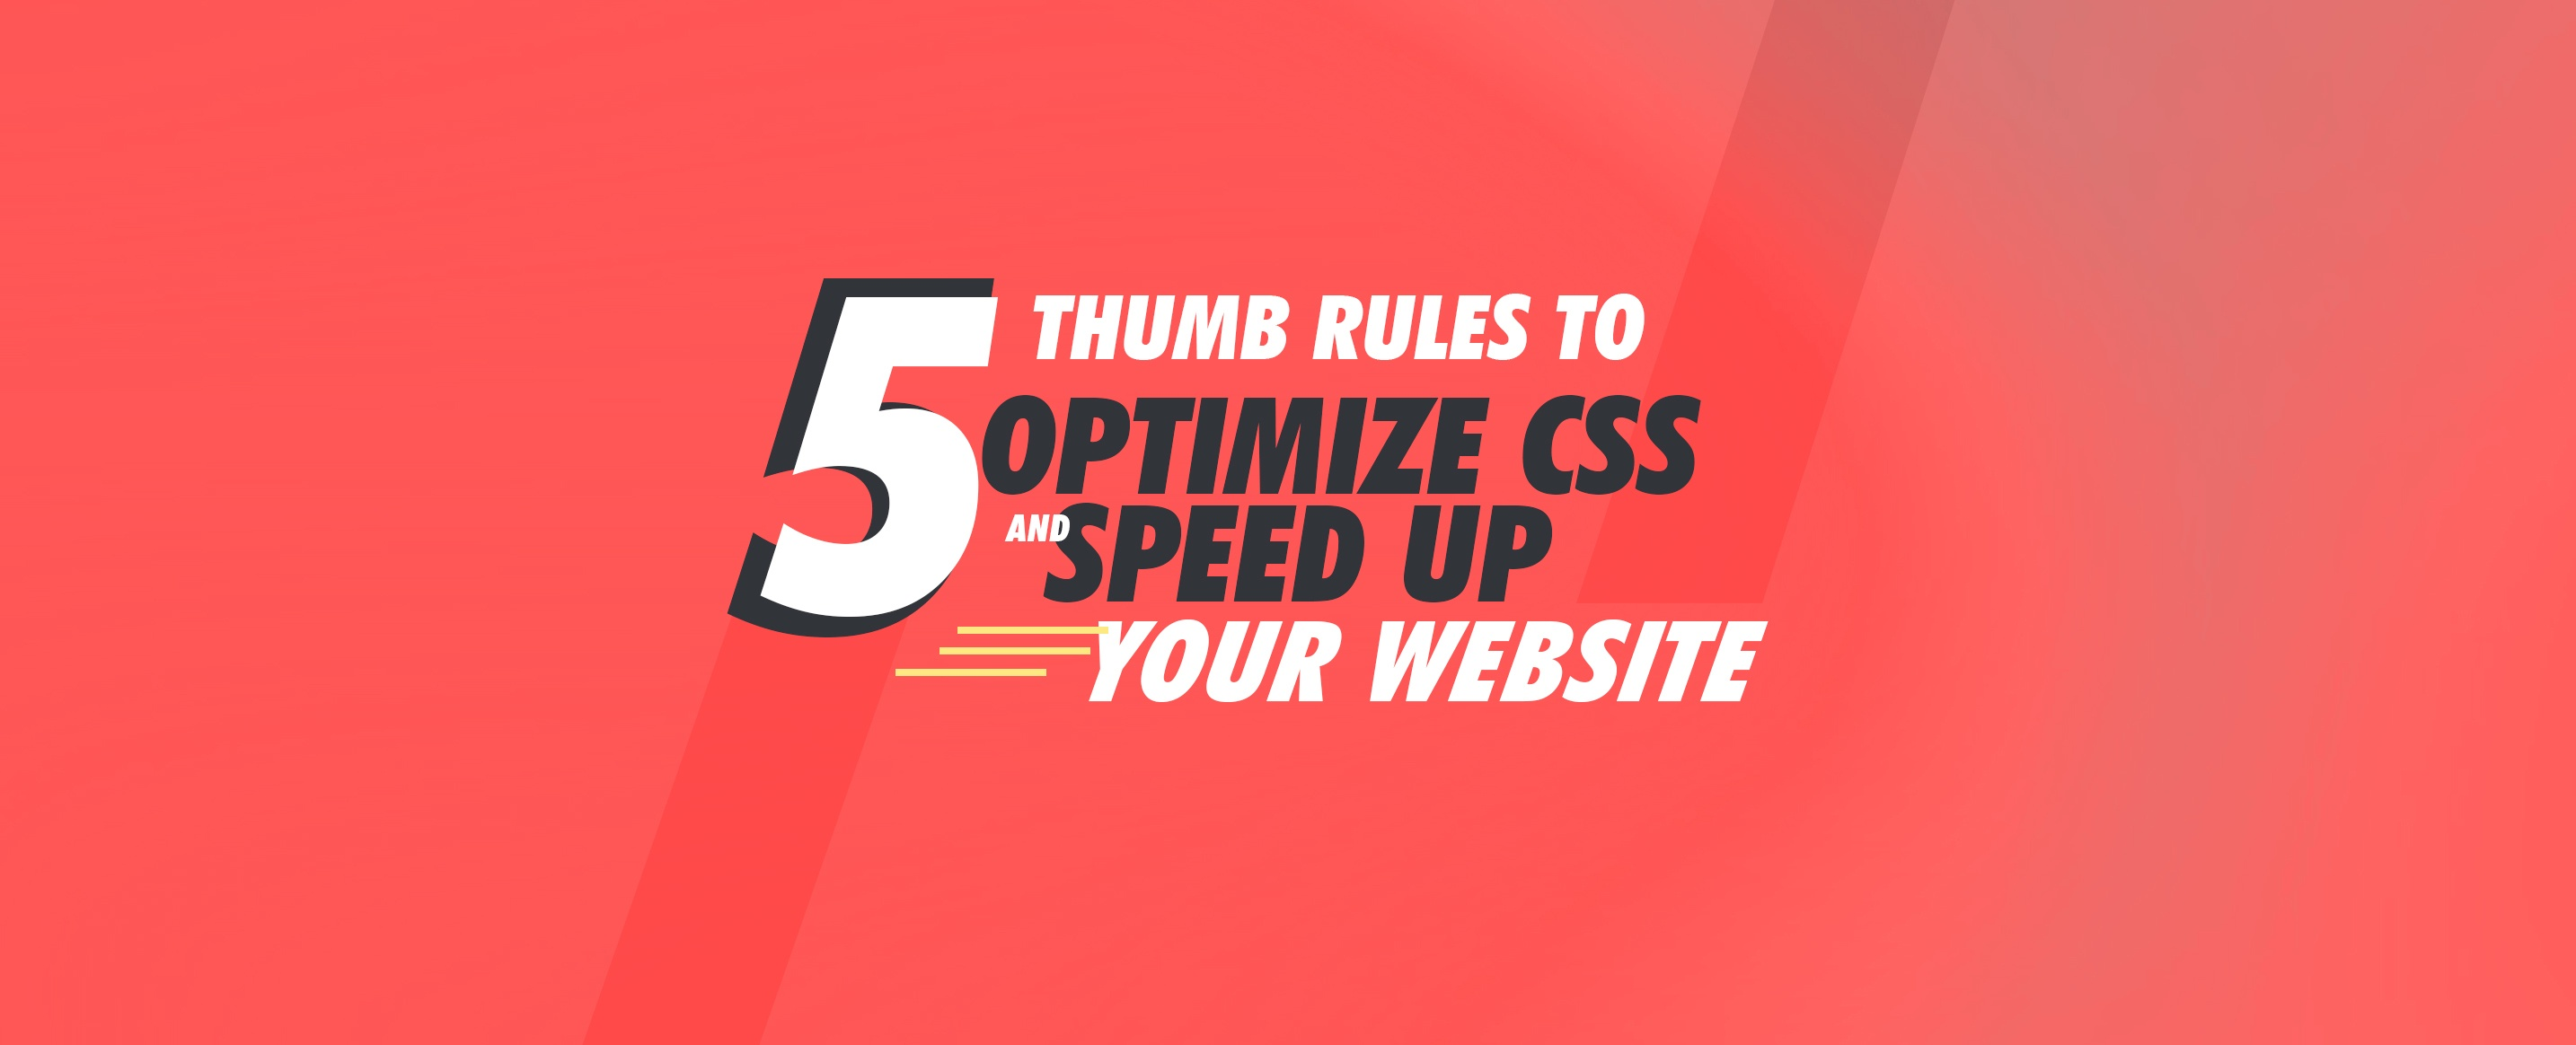 5-Thumb-Rules-To-Optimize-CSS-and-Speed-Up-Your-Website